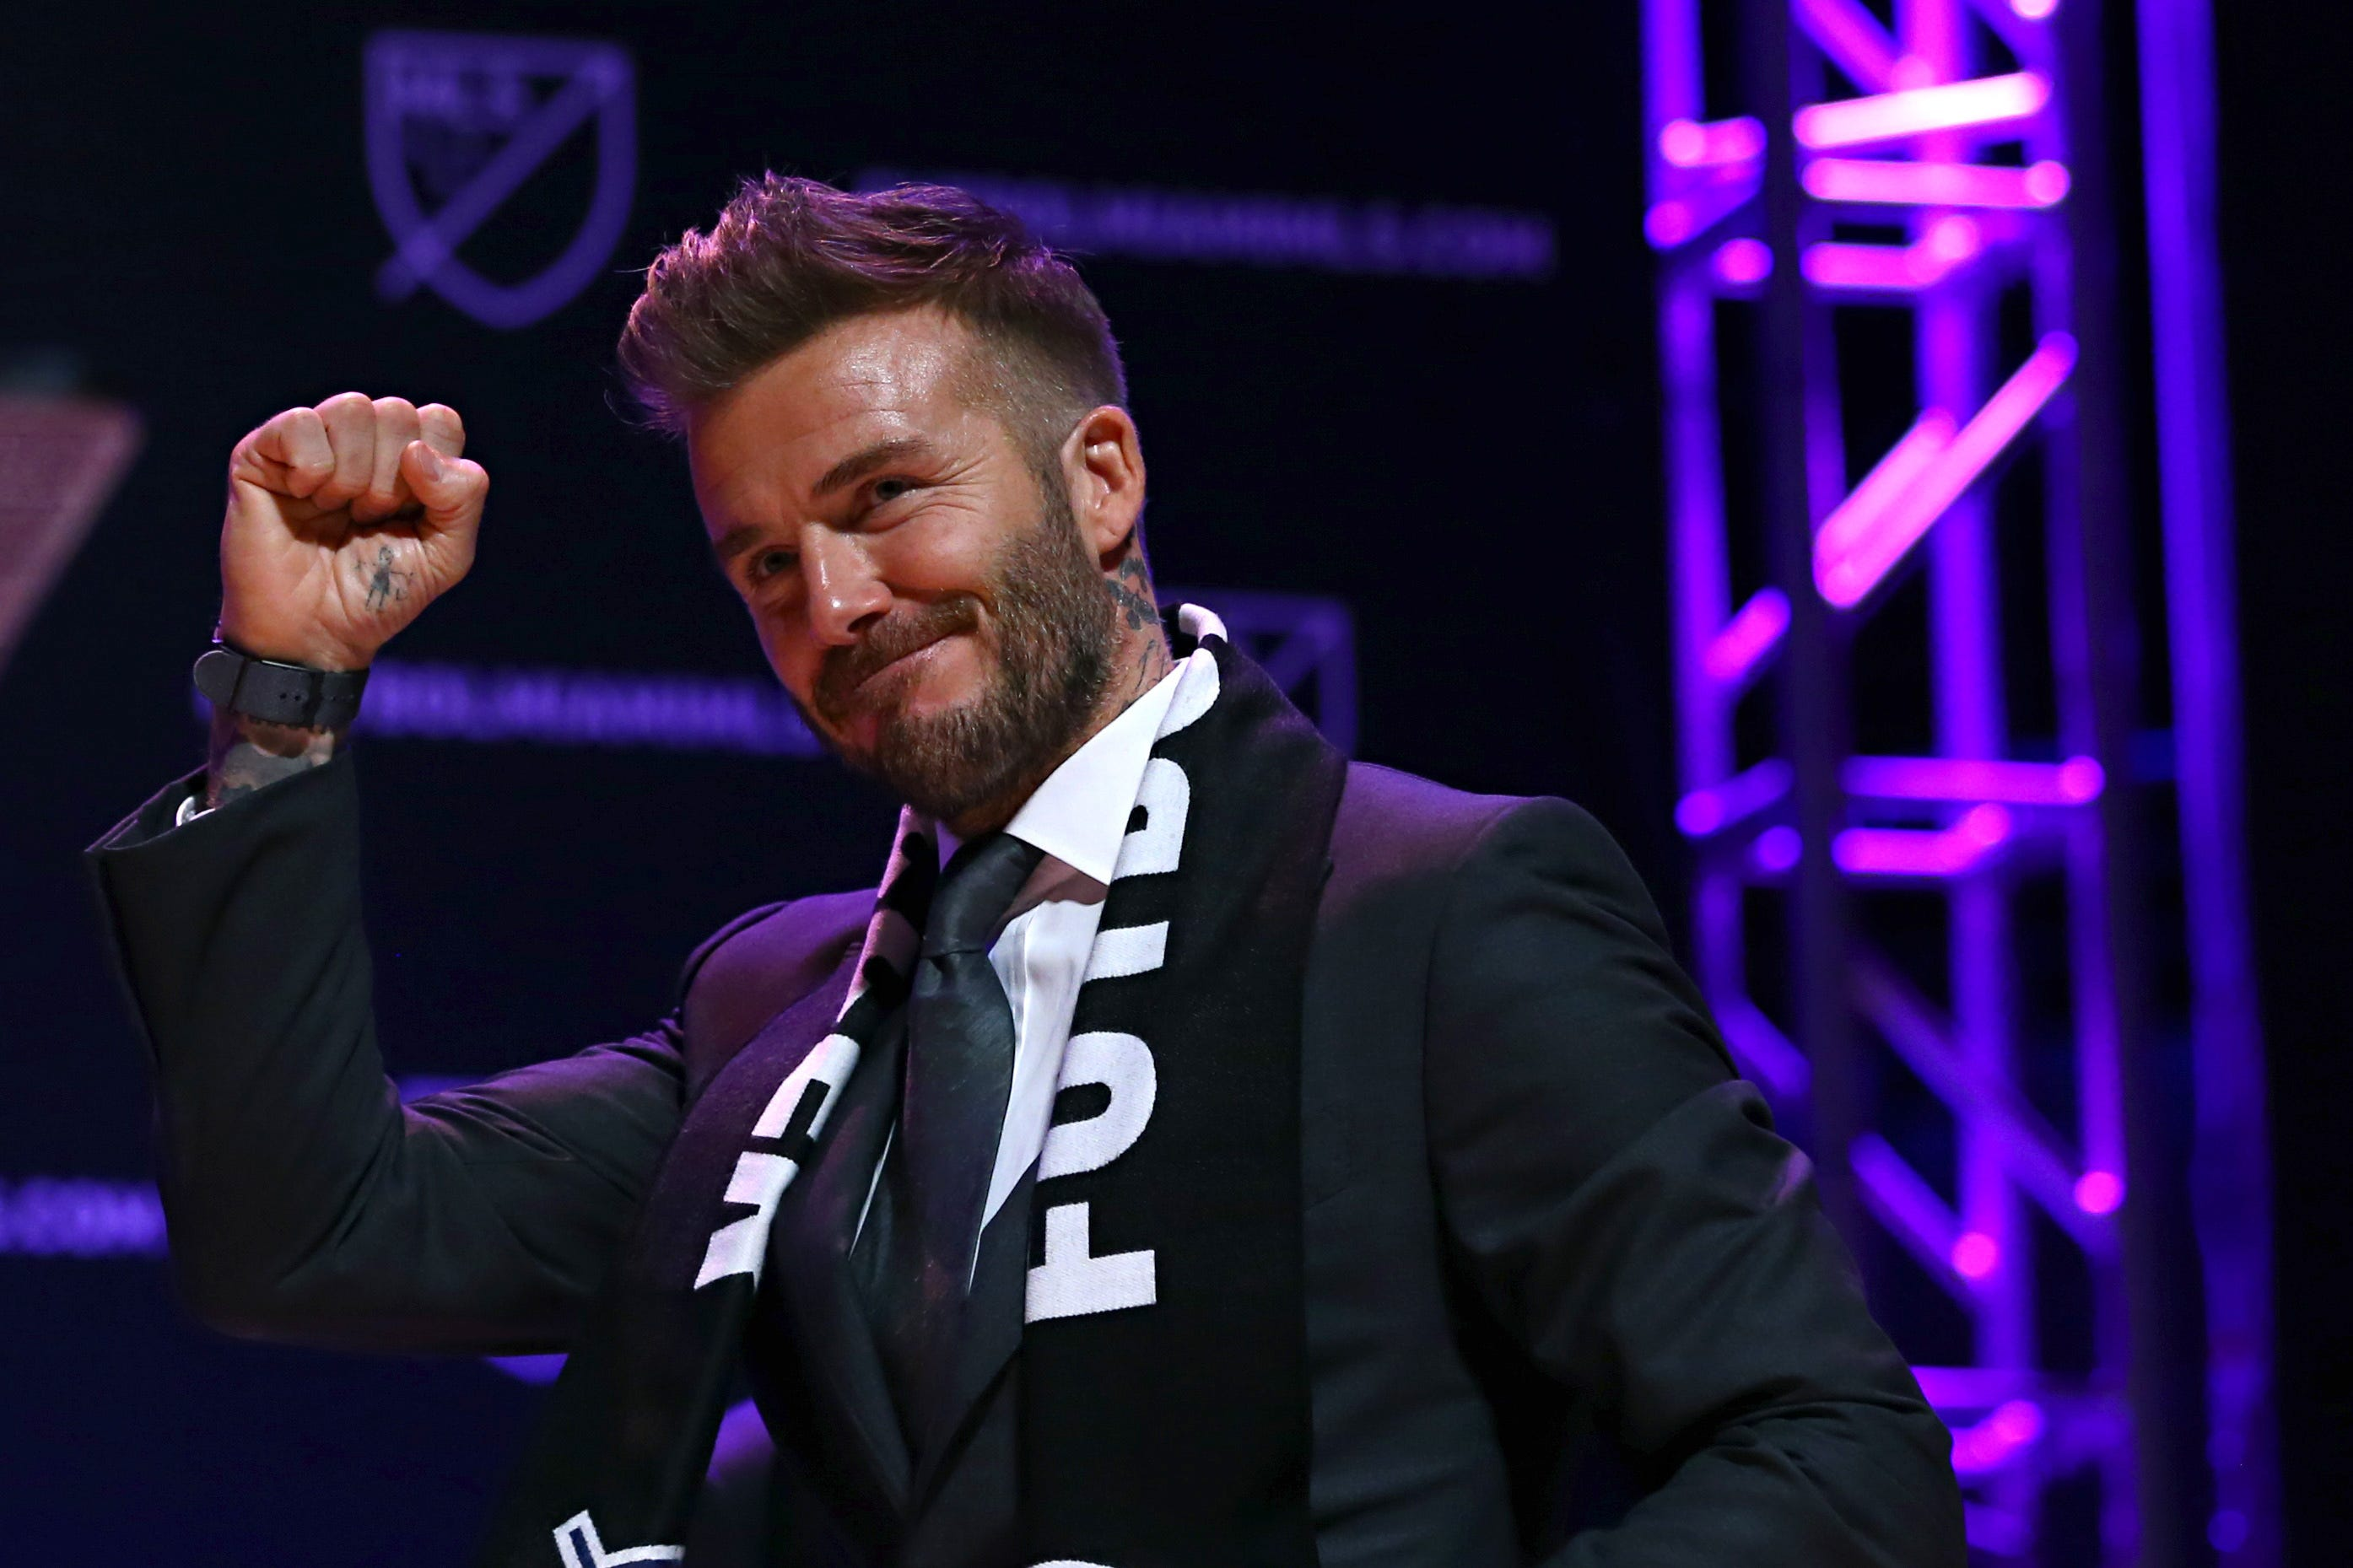 David Beckham attempts to convince Neymar to sign with Inter Miami CF